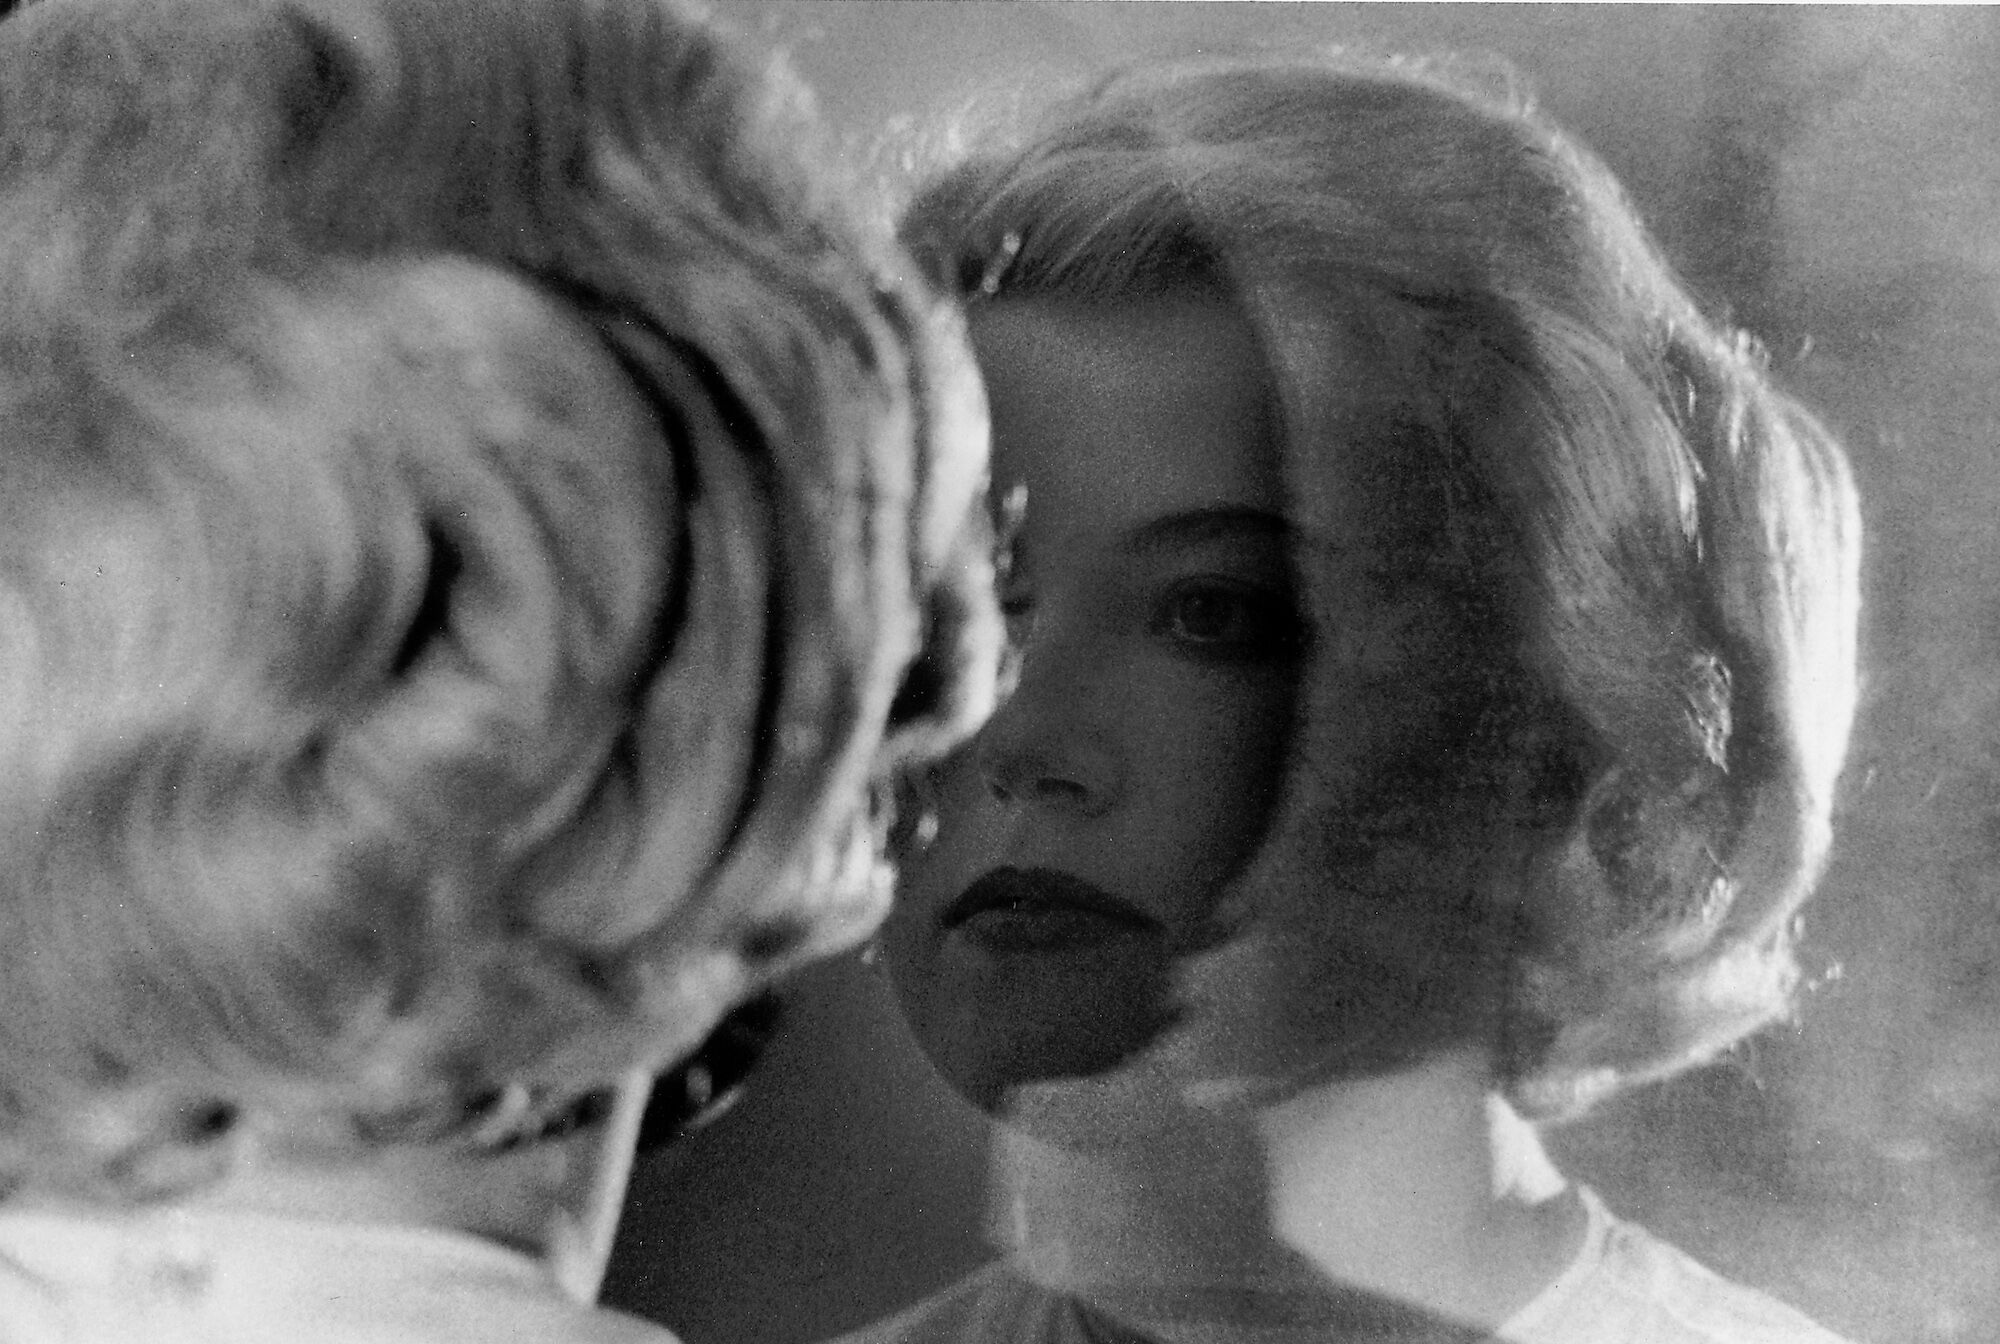 Cindy Sherman, Untitled Film Still #56, 1980. Courtesy of the artist and Metro Pictures, New York.